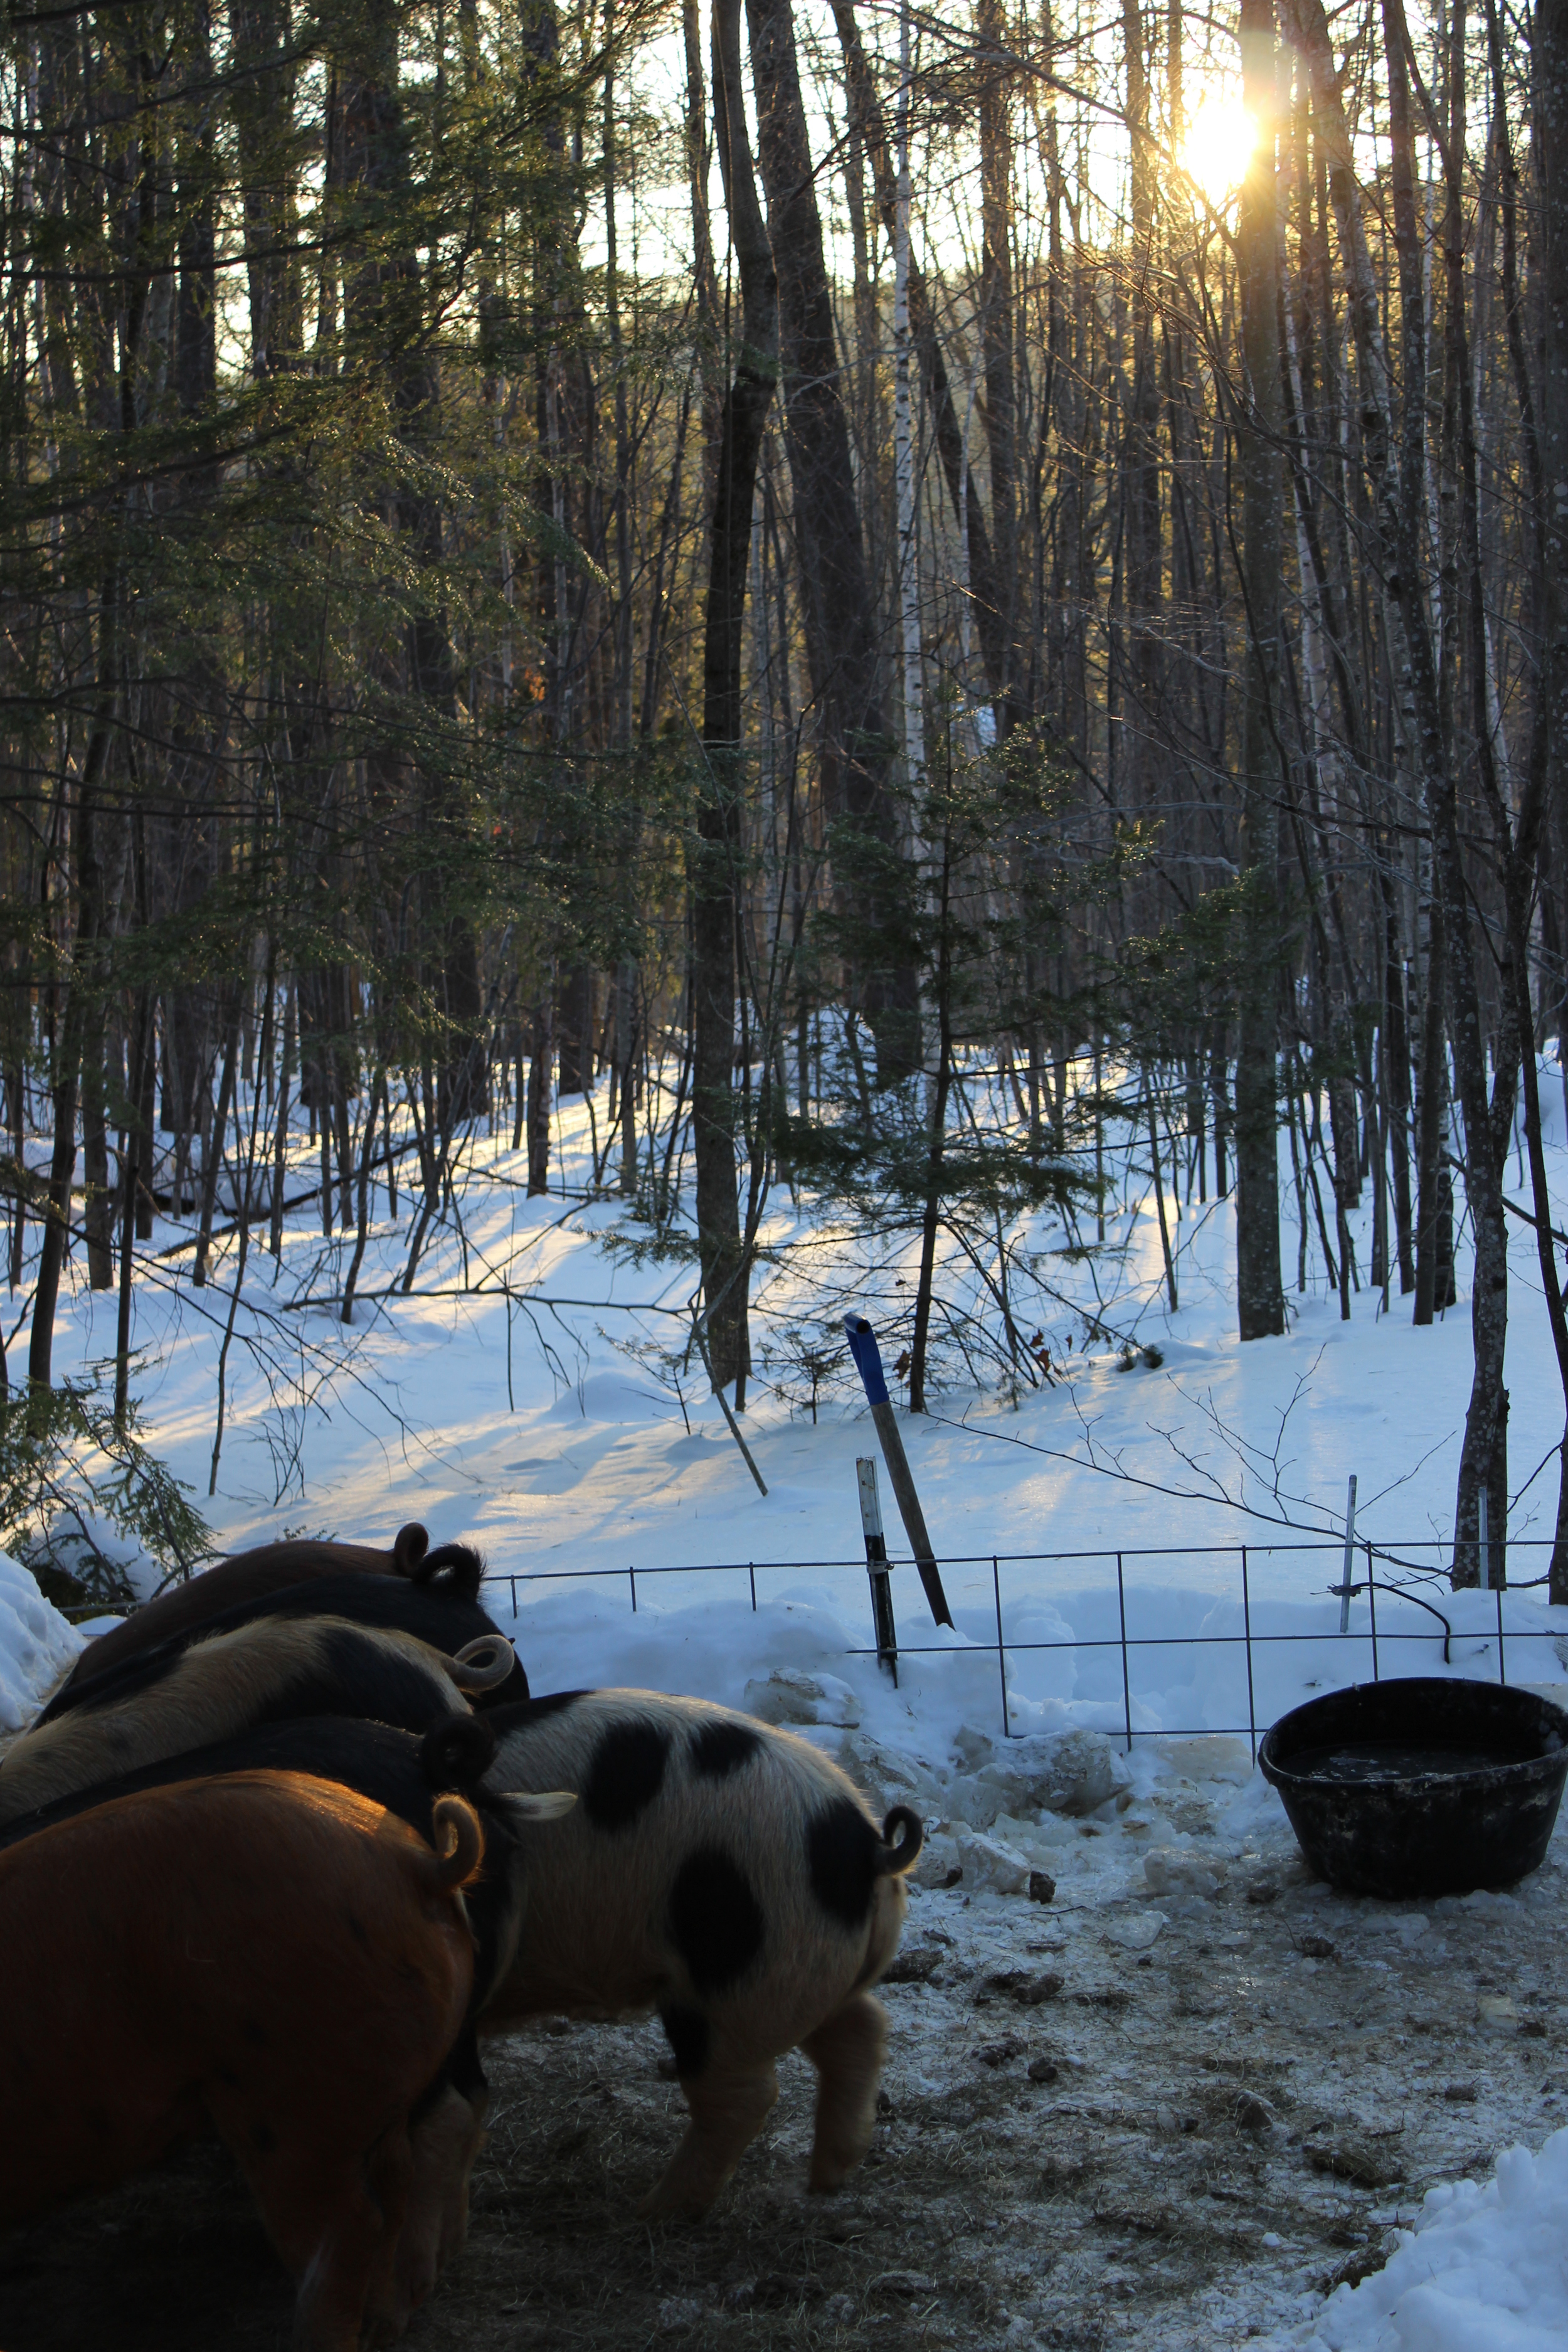 The Farm on Cragged Mountain's hogs, partying in the woods.